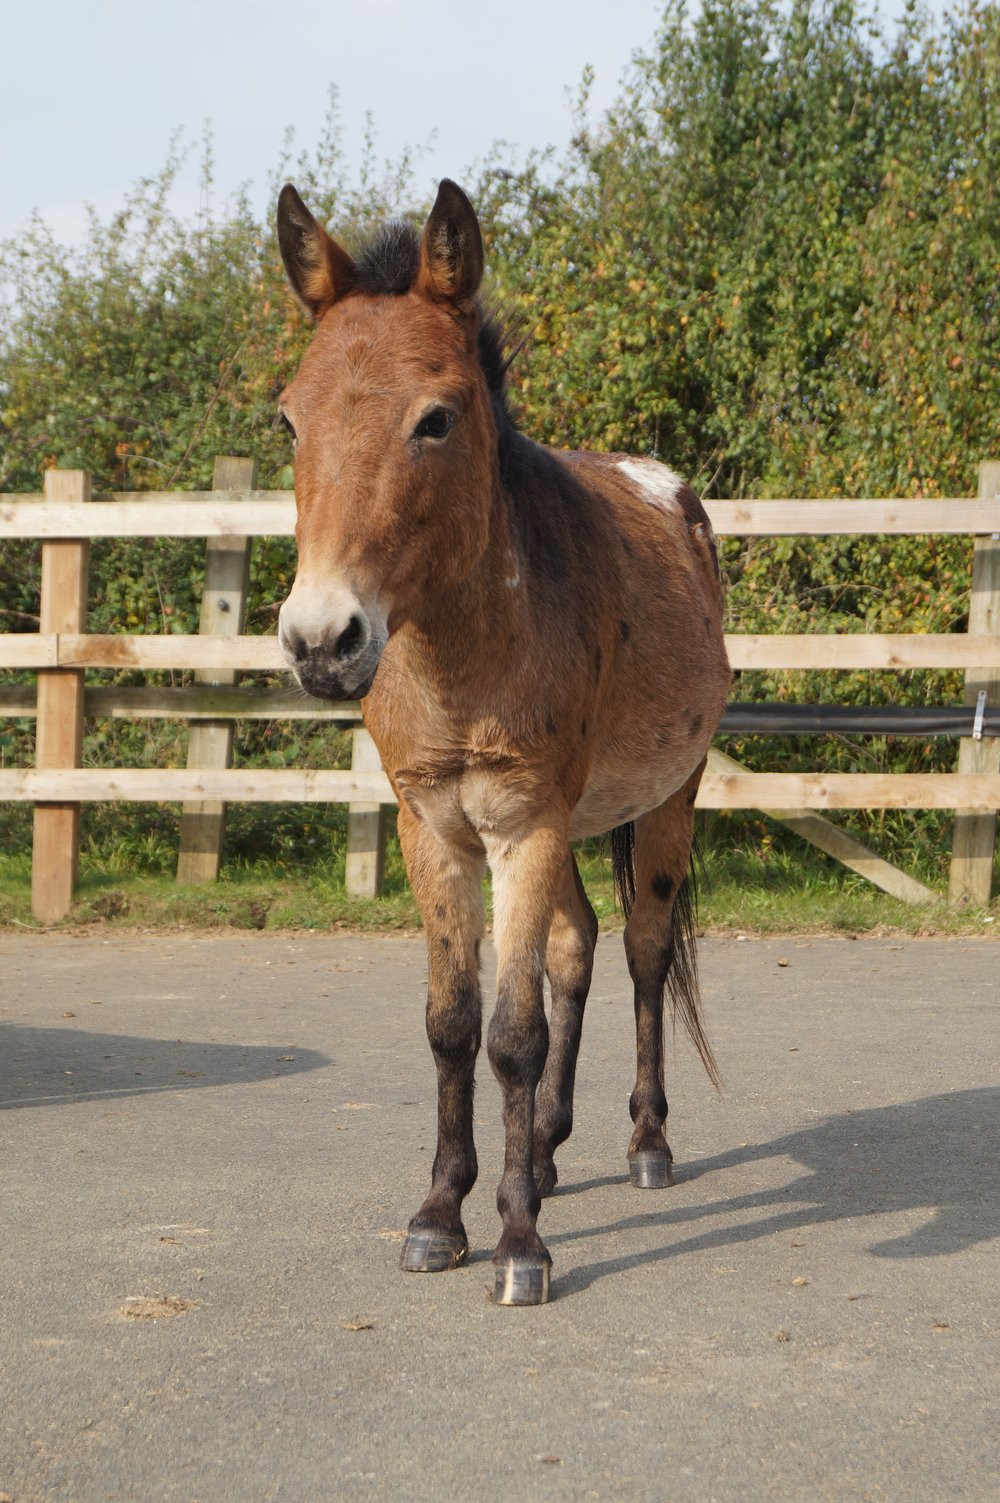 Riley is a hinny - the offspring of a a female donkey and a male pony